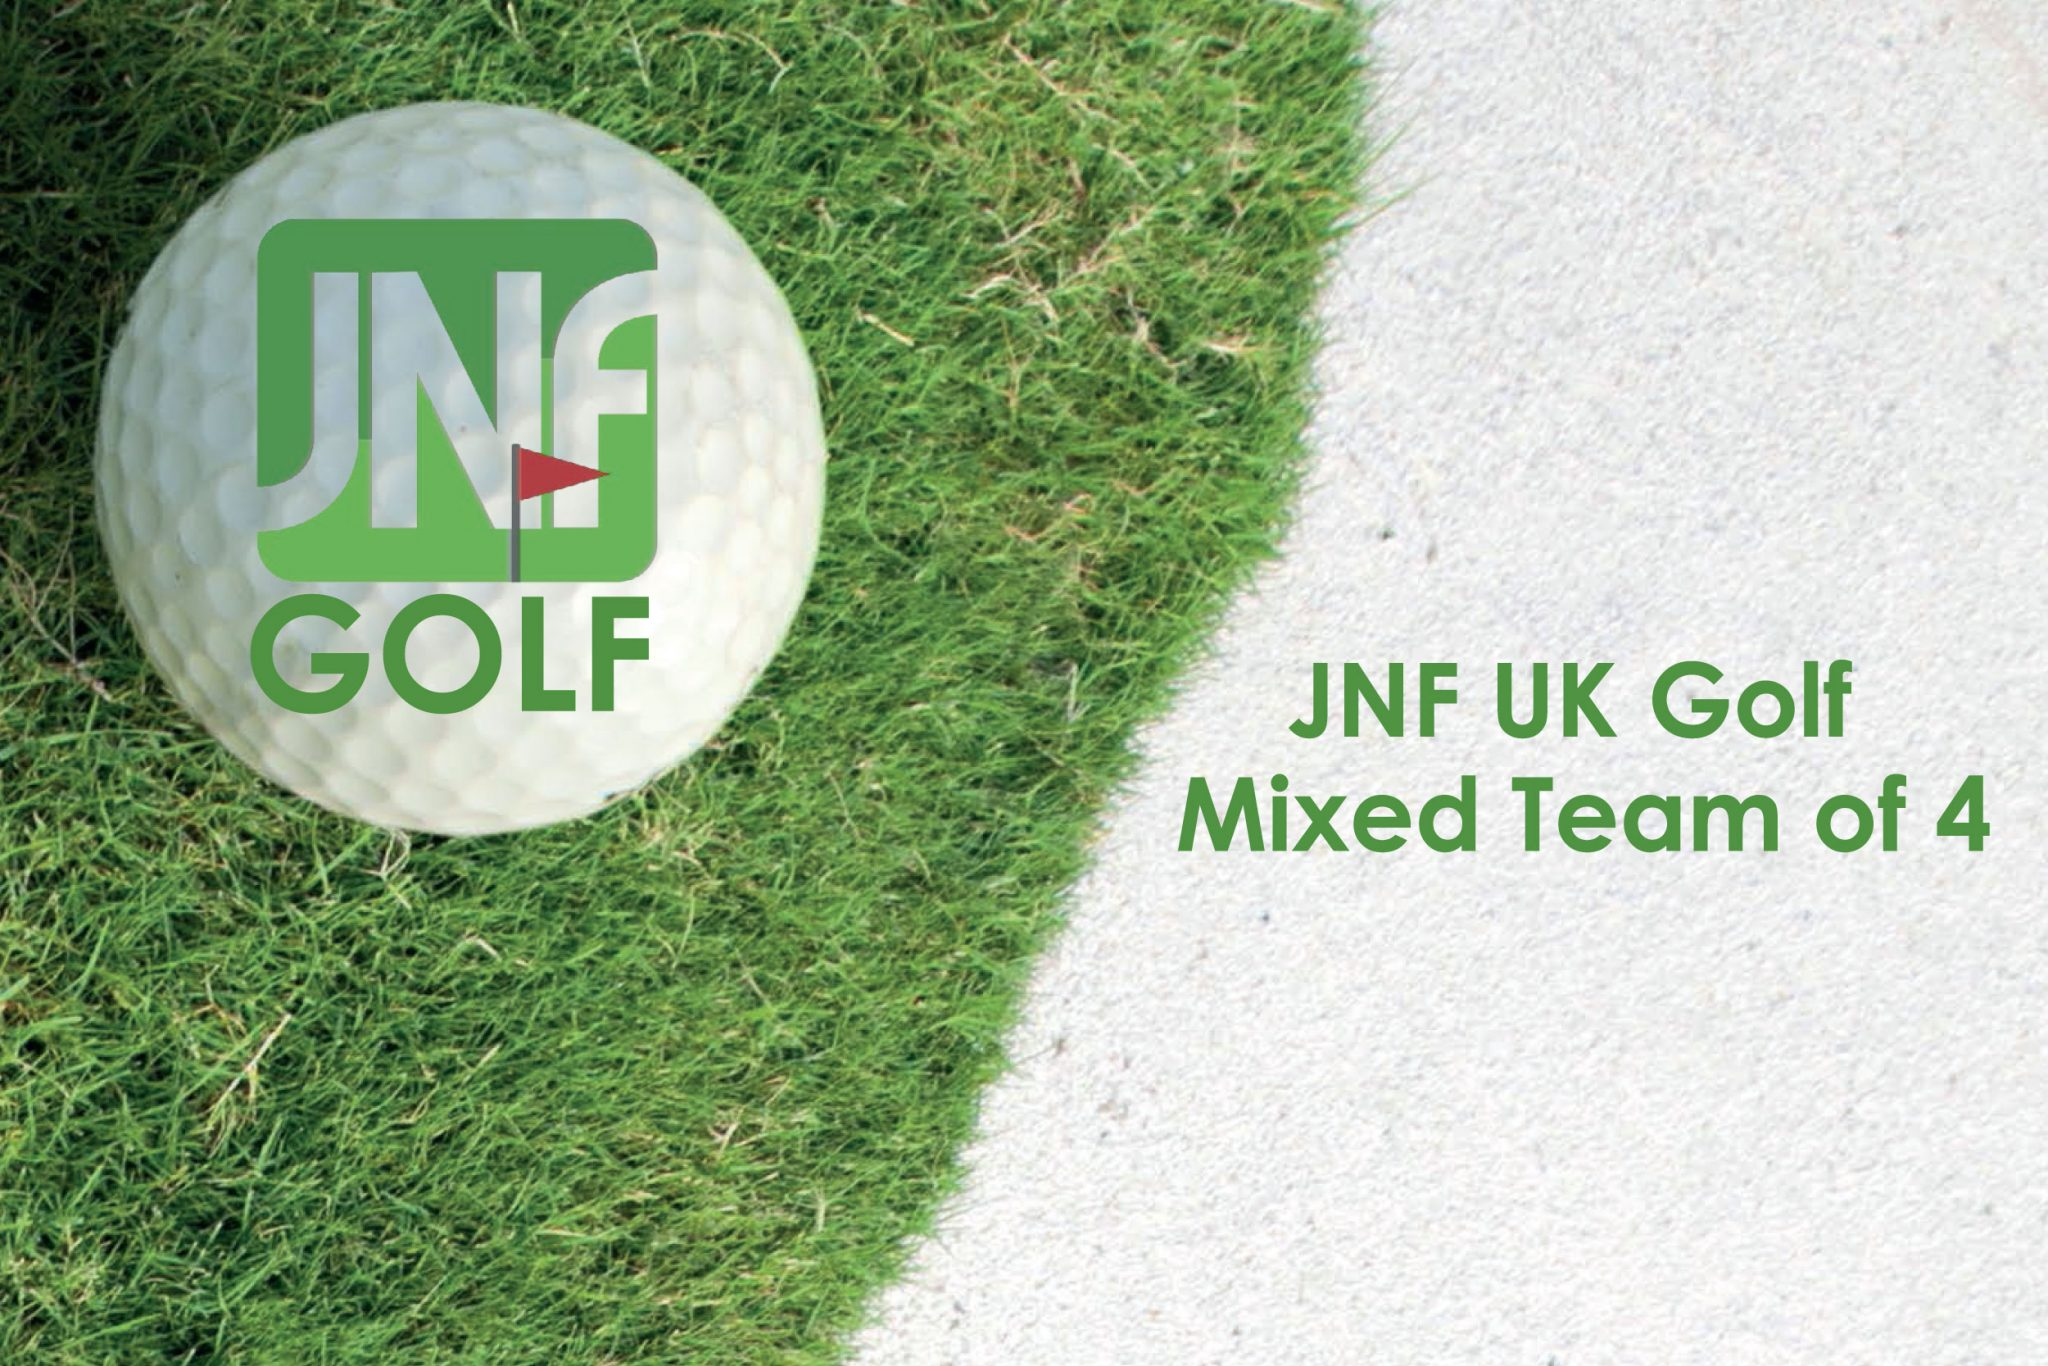 JNF Golf Mixed Team of 4